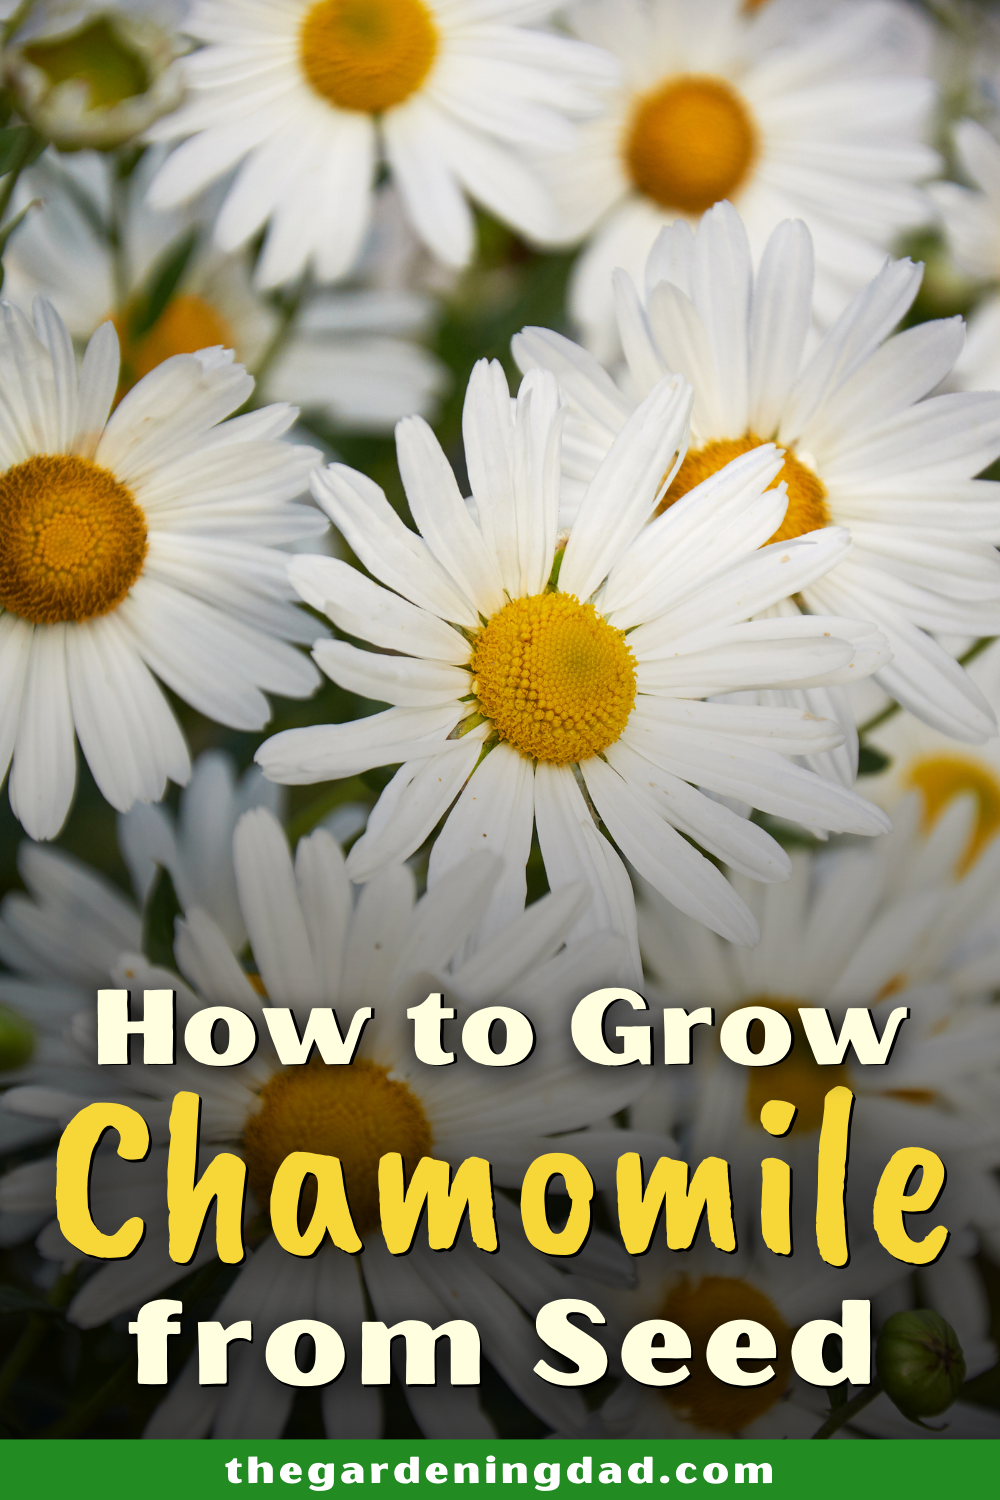 10 Easy Tips How To Grow Chamomile The Gardening Dad Chamomile Growing Chamomile Plant Planting Herbs